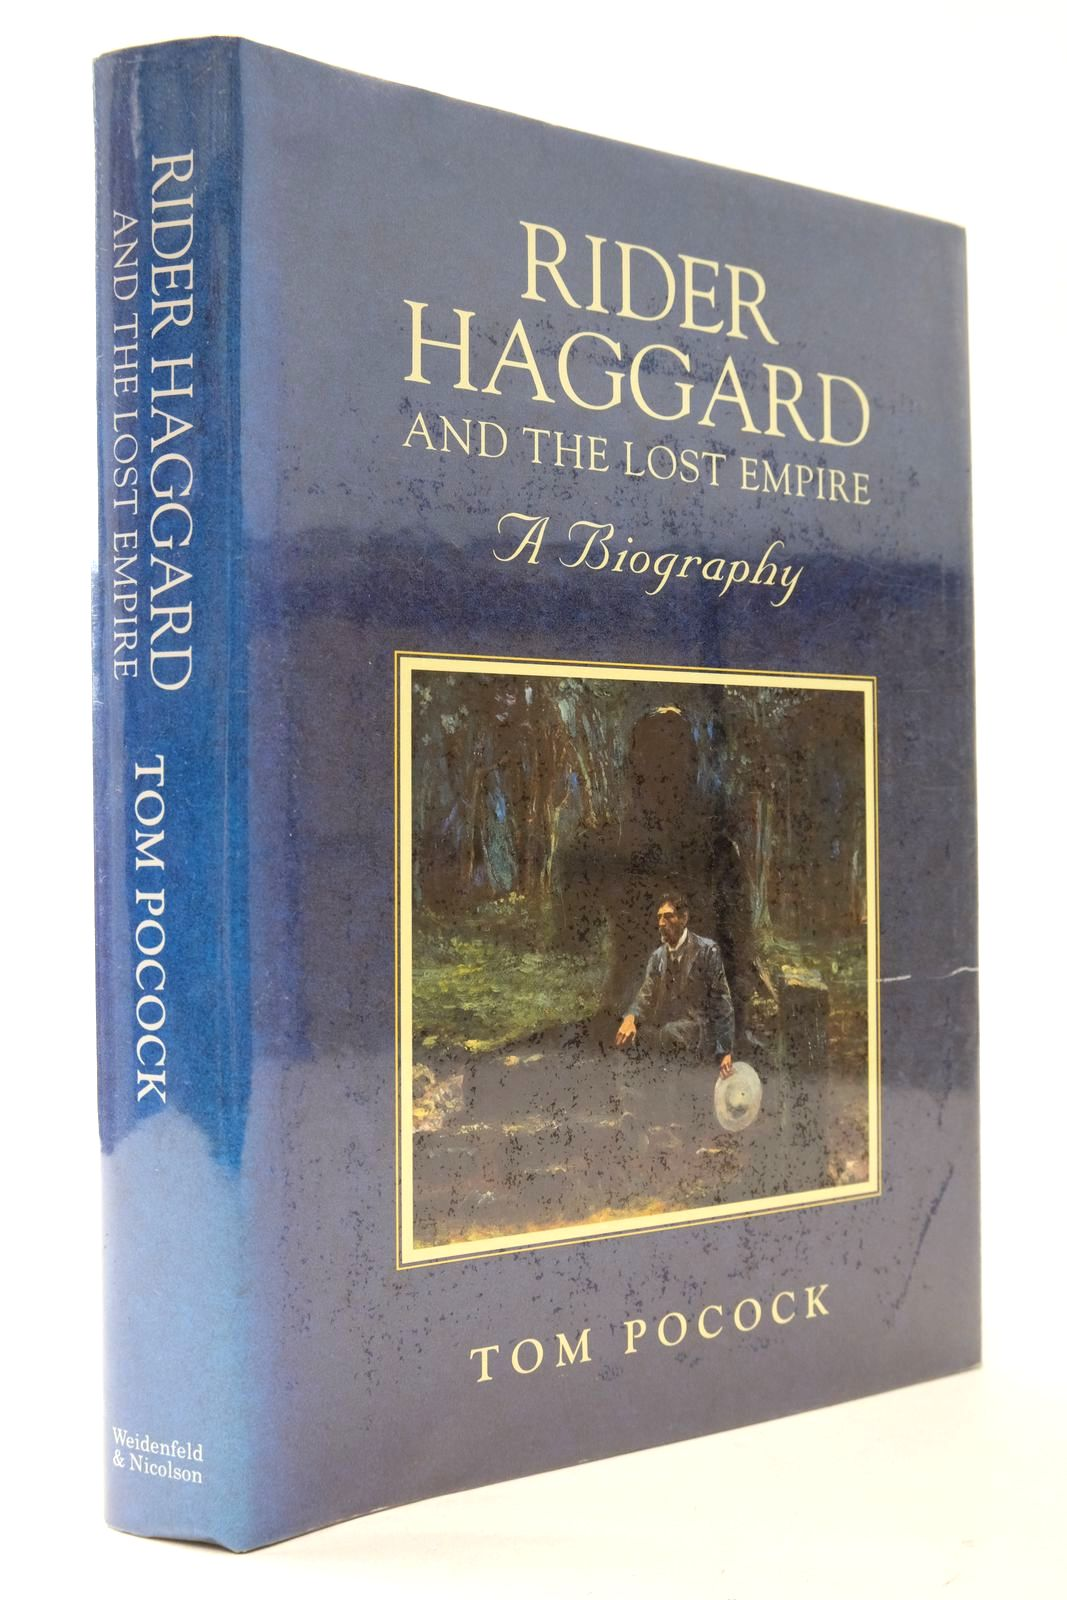 Photo of RIDER HAGGARD AND THE LOST EMPIRE- Stock Number: 2133302